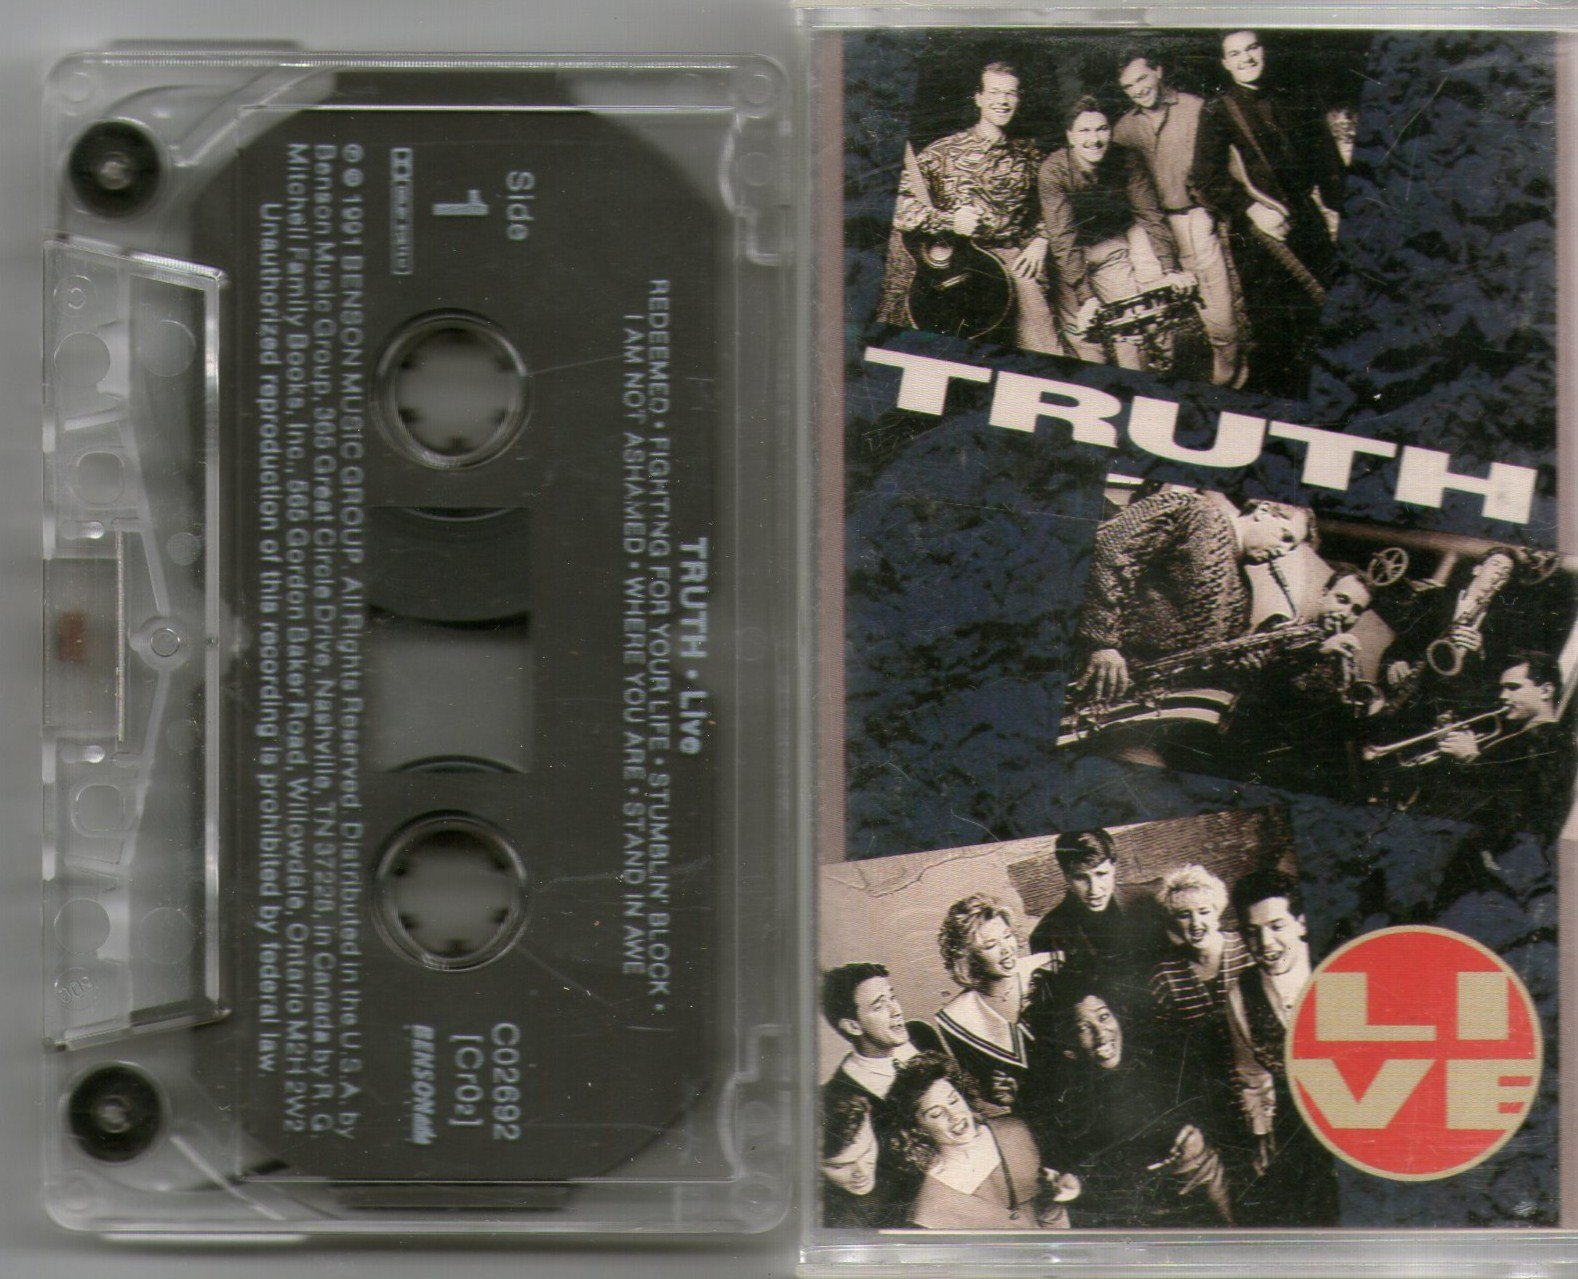 Truth Live